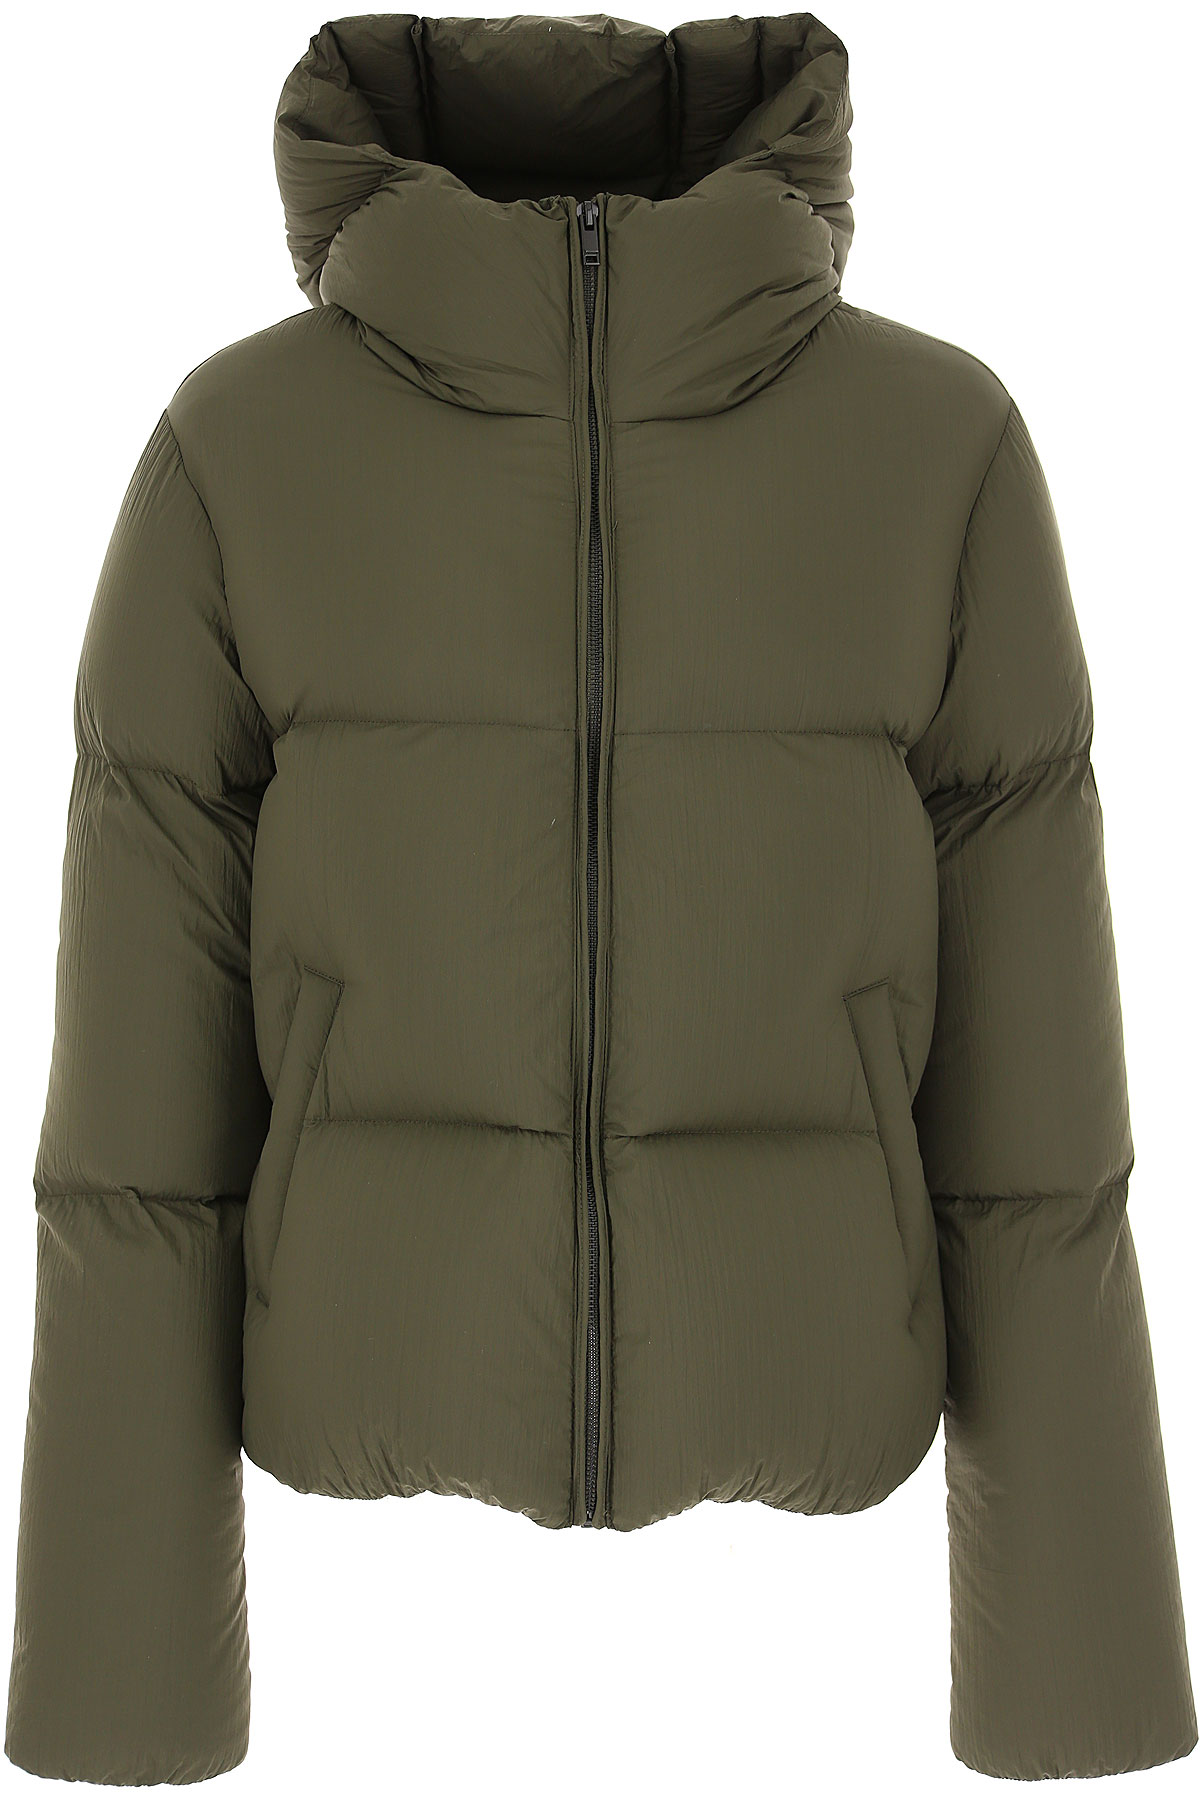 Dondup Down Jacket for Women, Puffer Ski Jacket On Sale in Outlet, Military, polyamide, 2019, 2 6 8